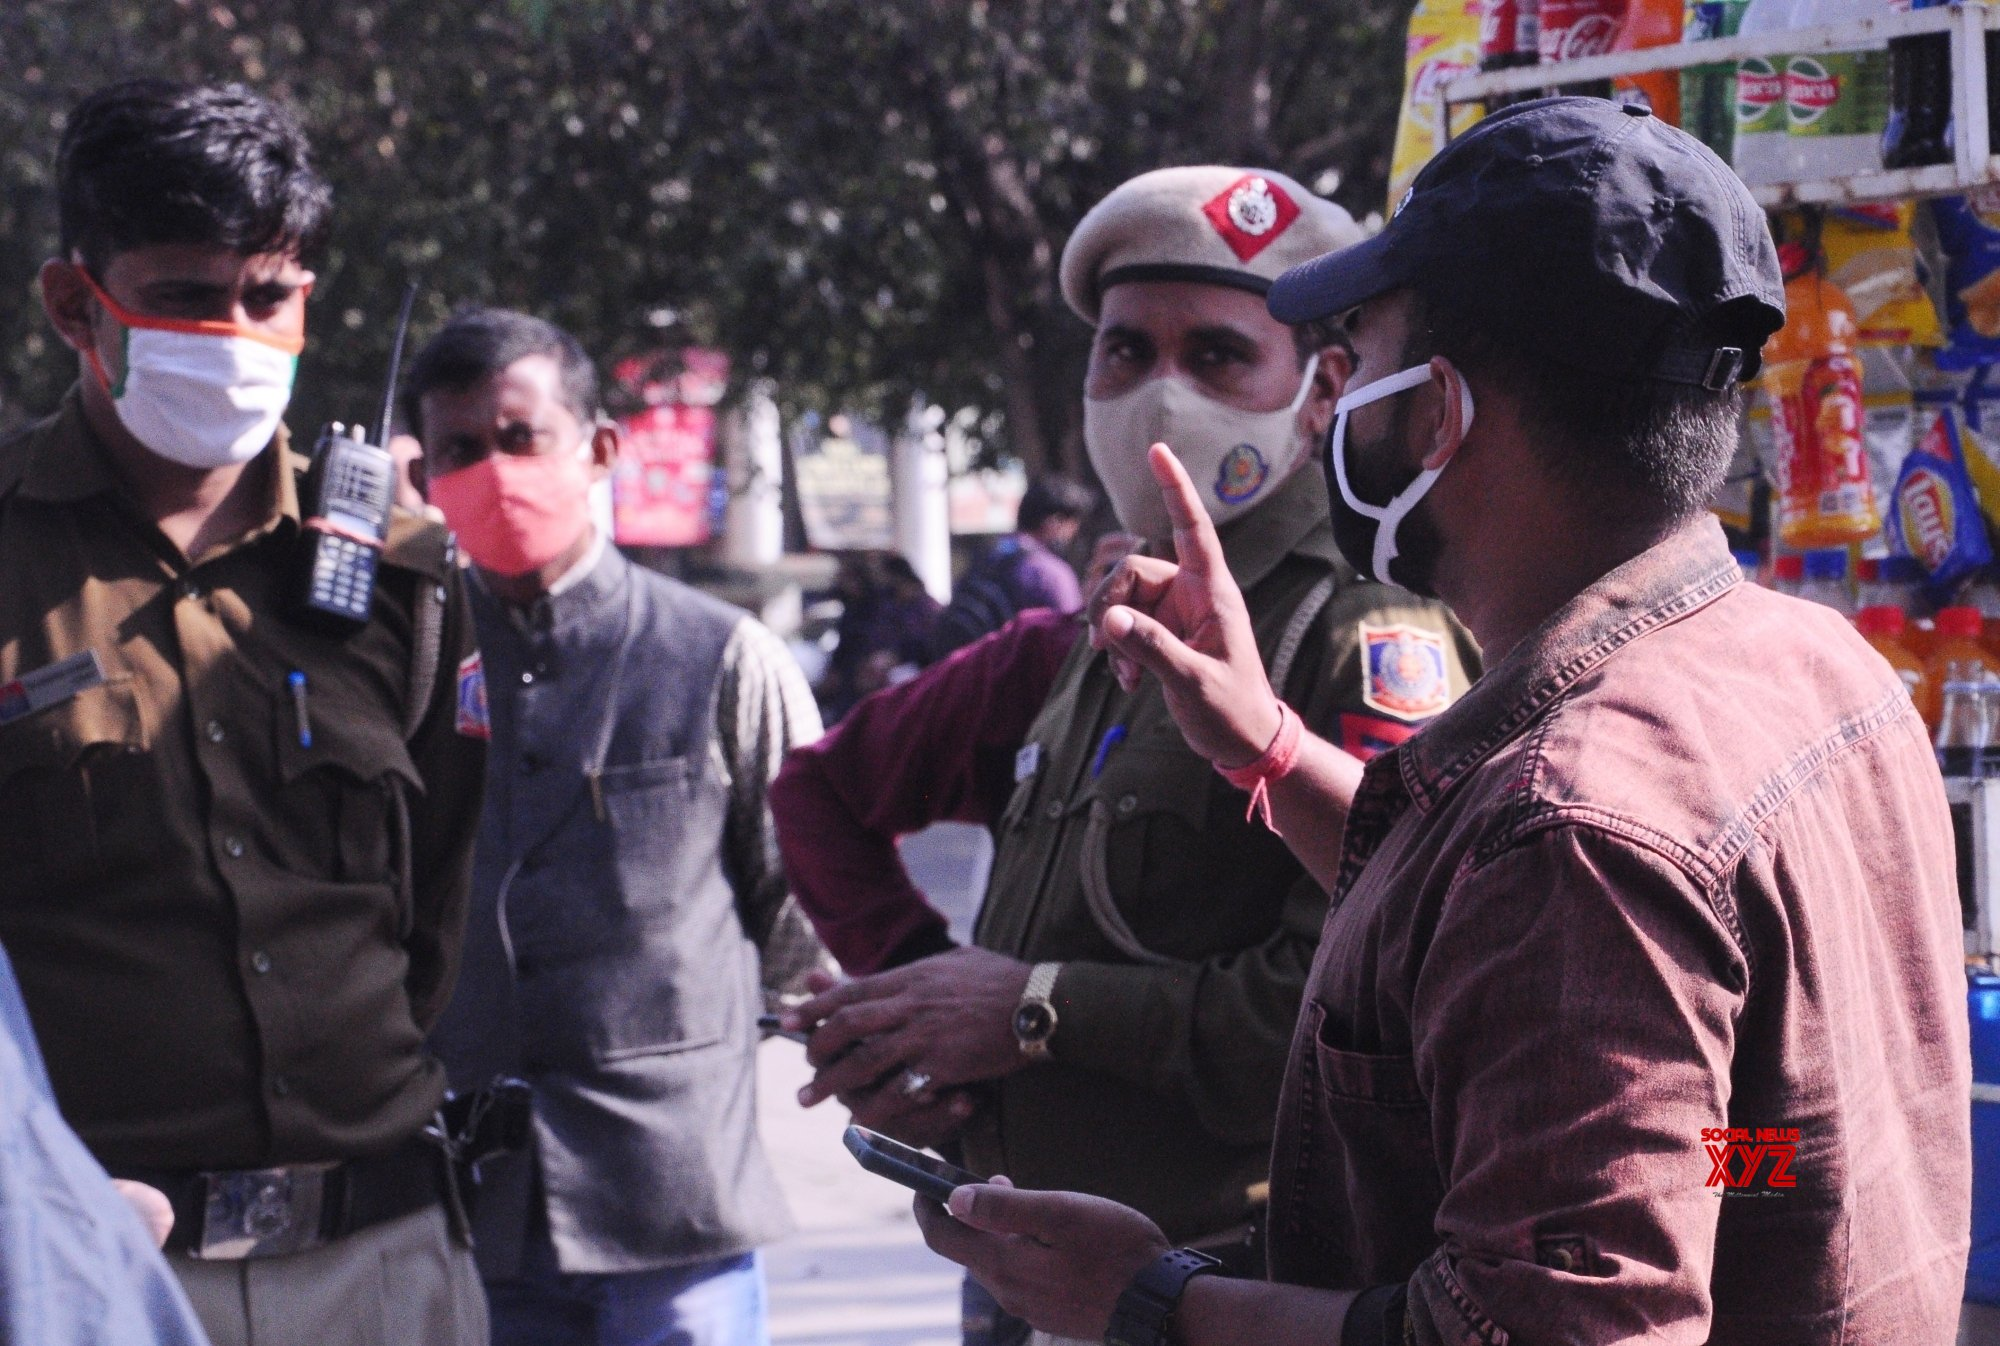 New Delhi: Youth penalised for clicking selfies in public while incorrectly wearing his mask #Gallery